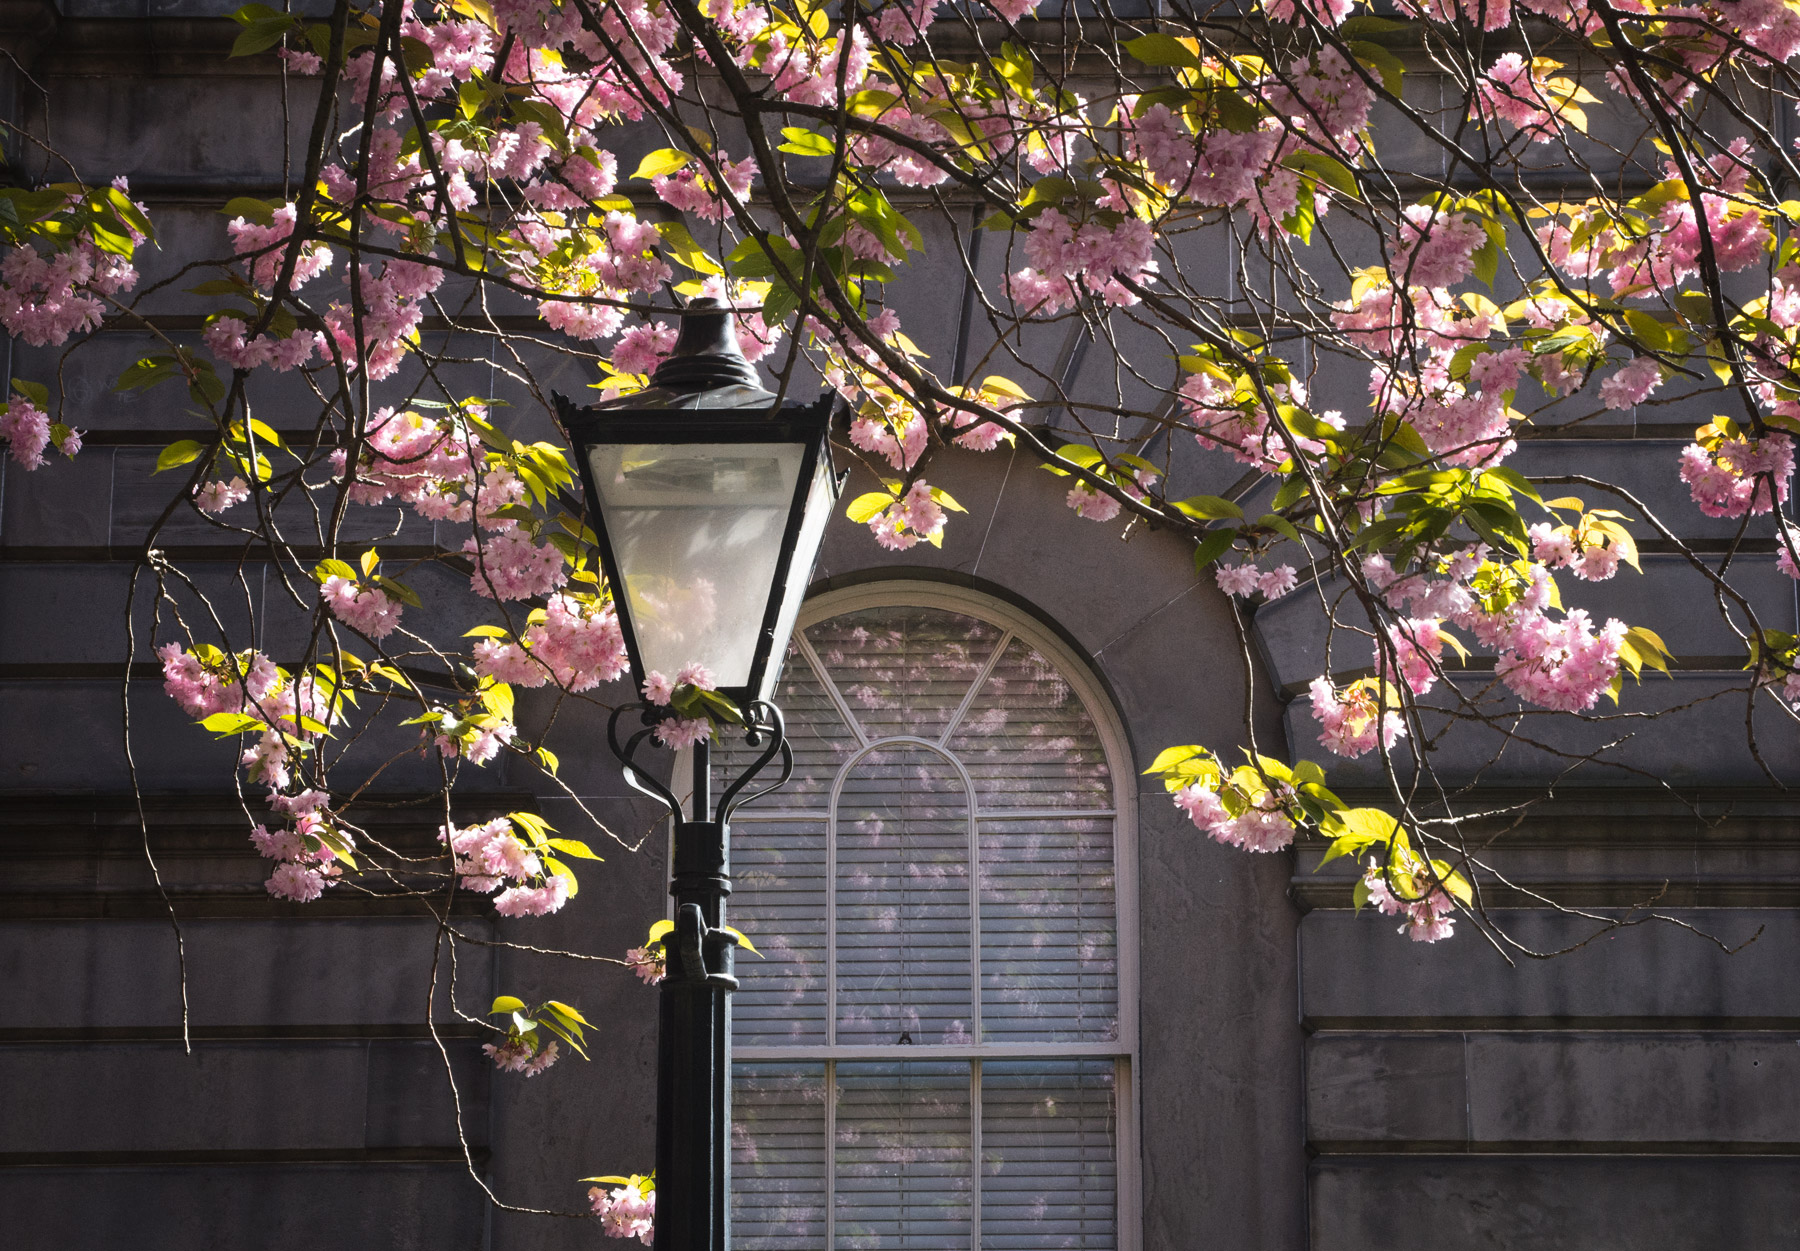 Lamp post in blossom